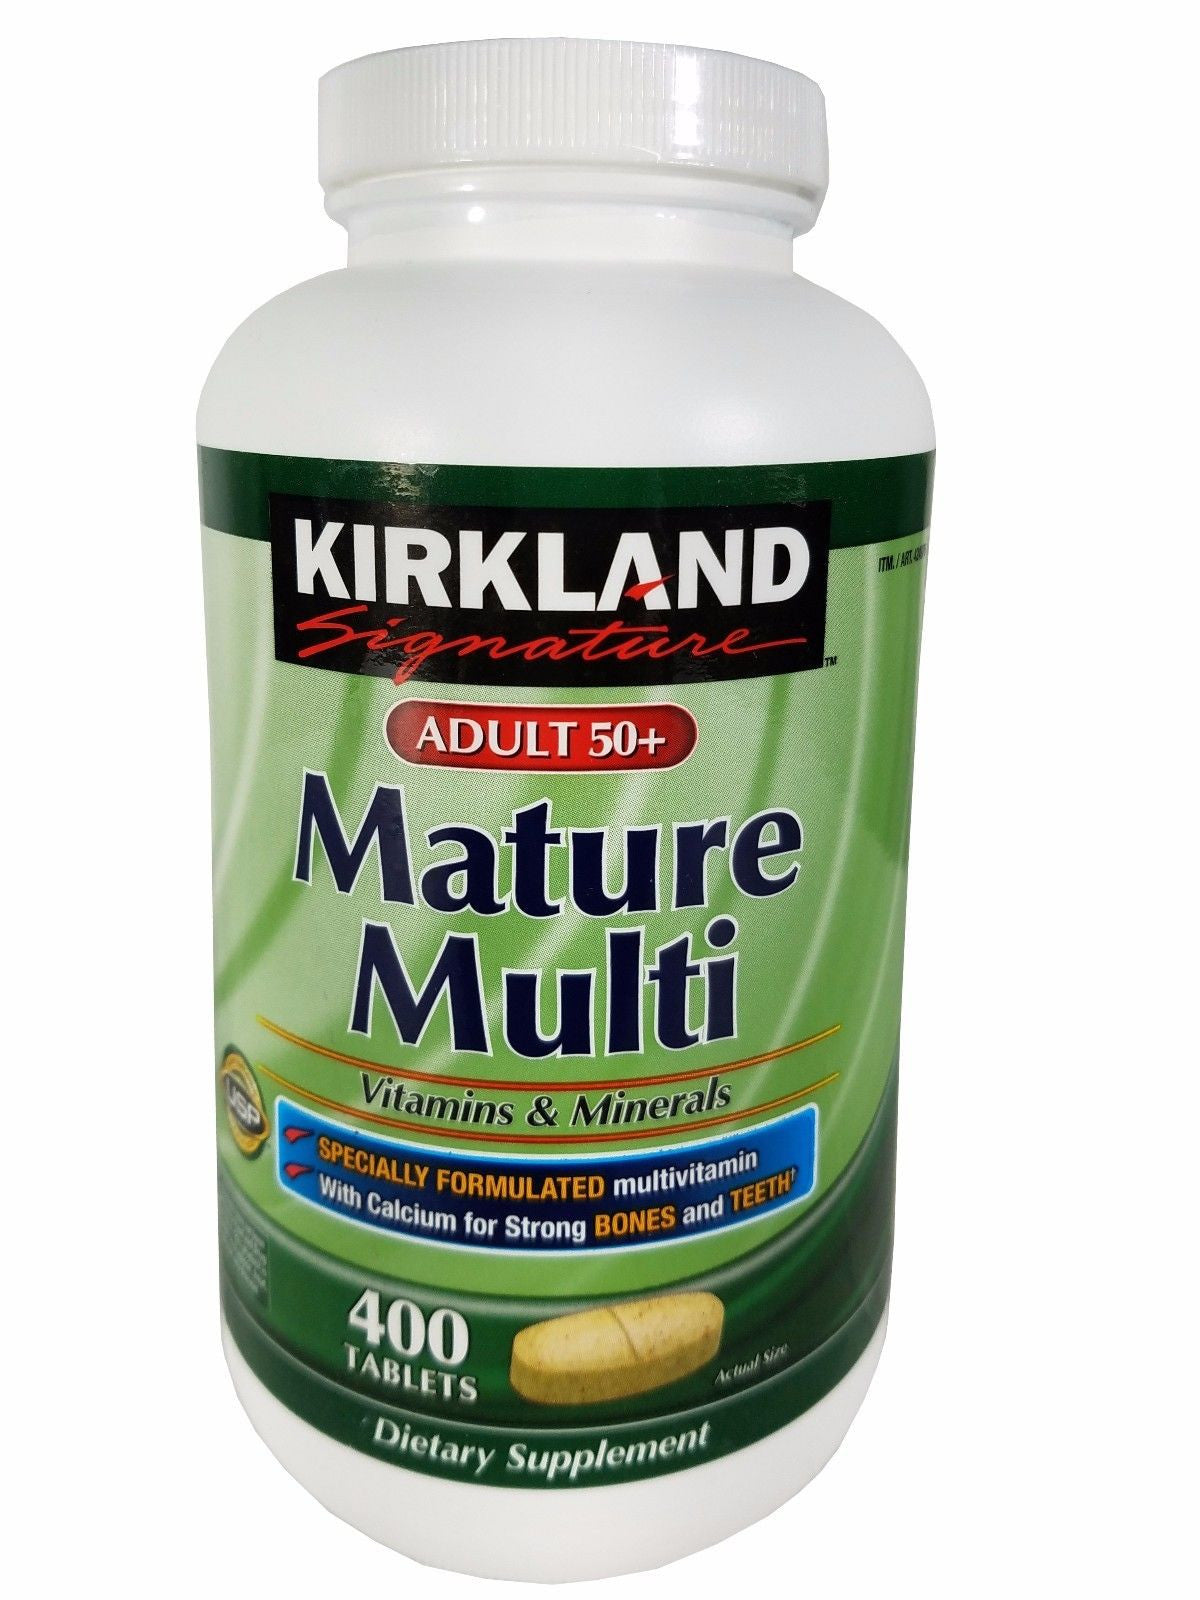 Kirkland mature multi vitamins pic 378